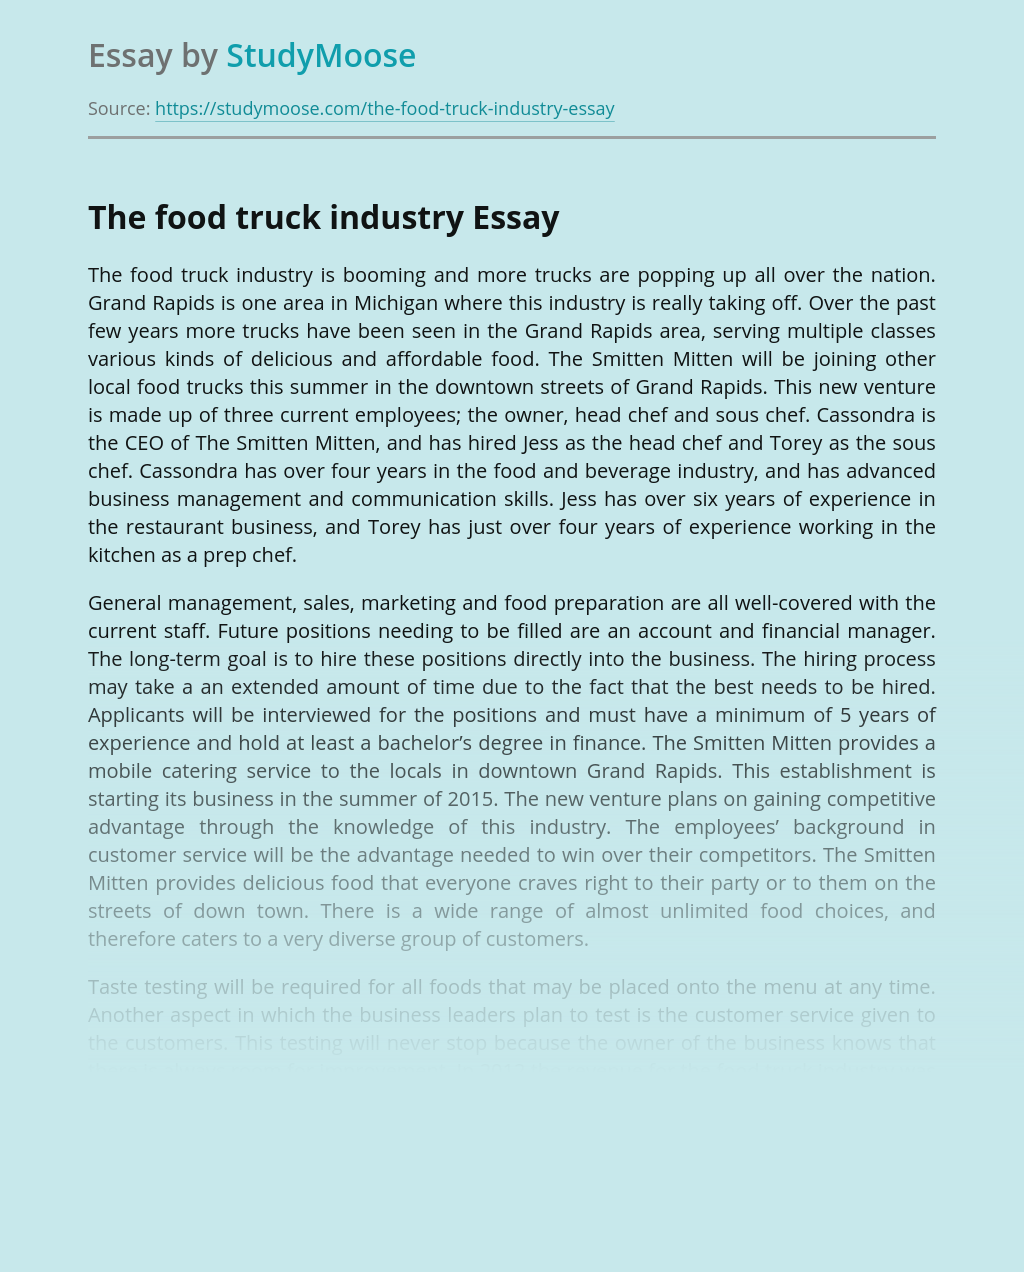 The food truck industry